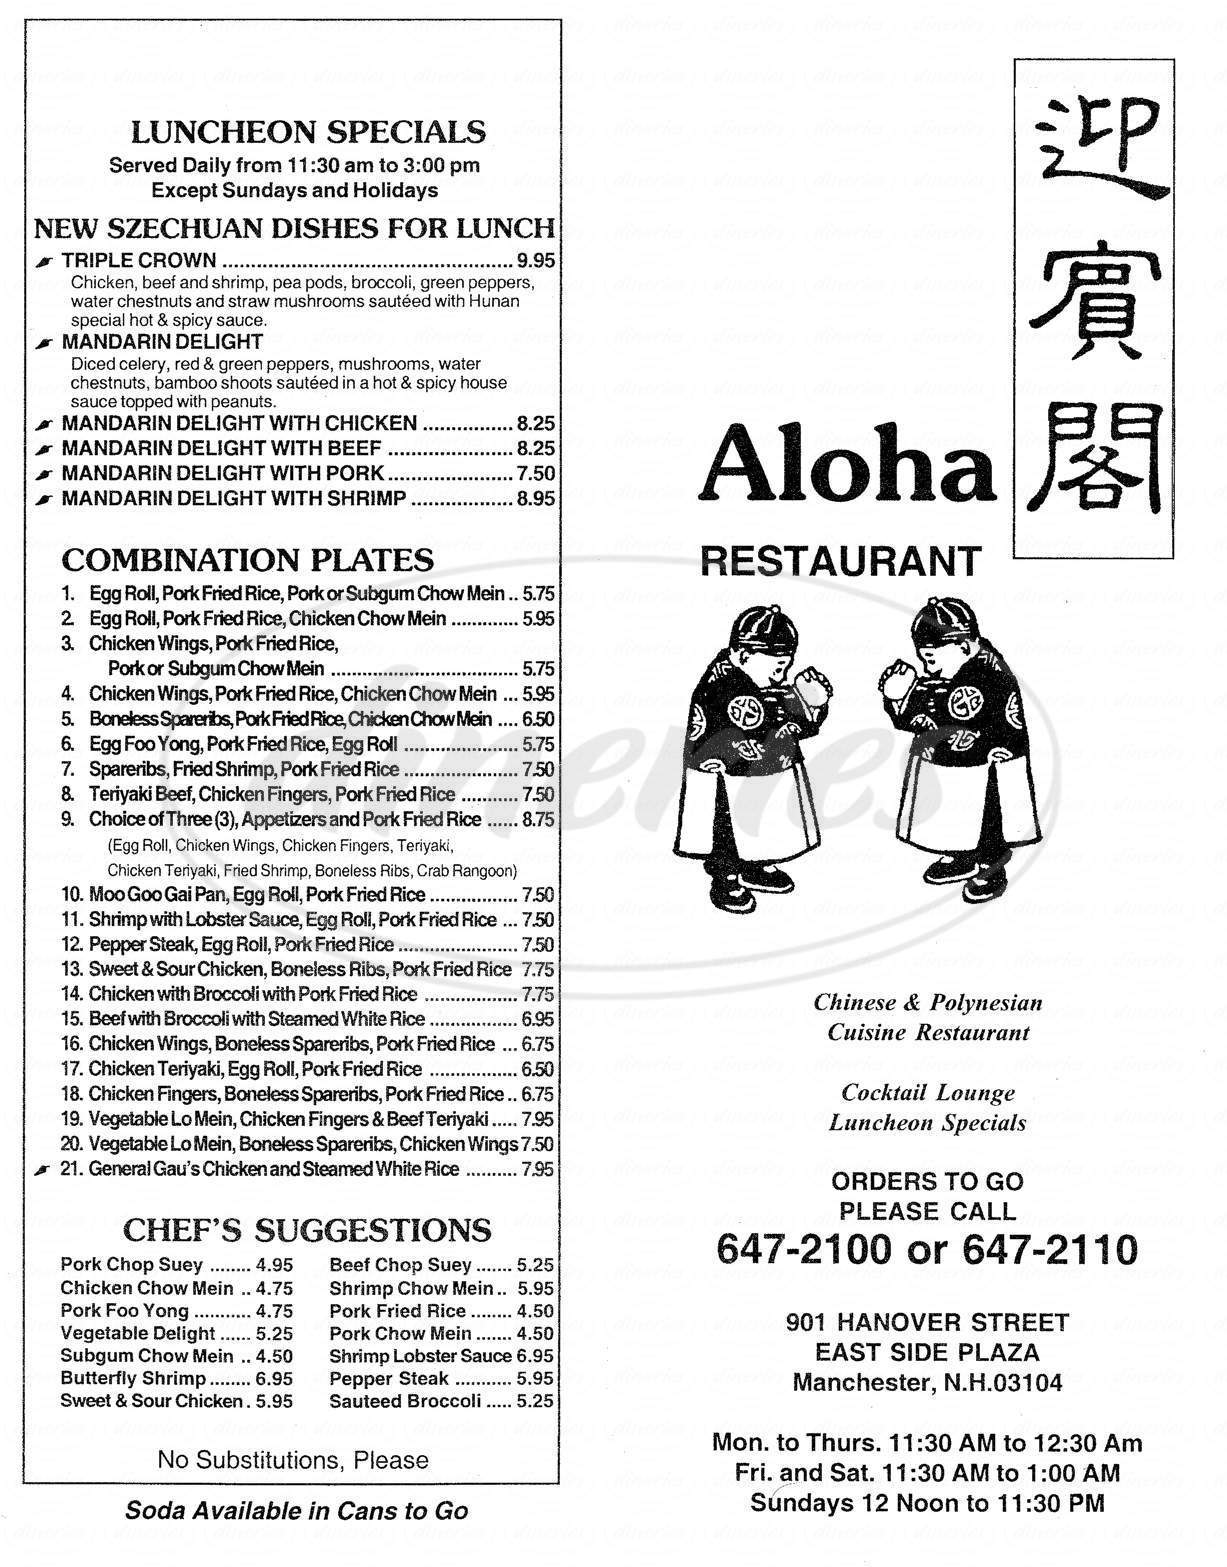 menu for Aloha Restaurant